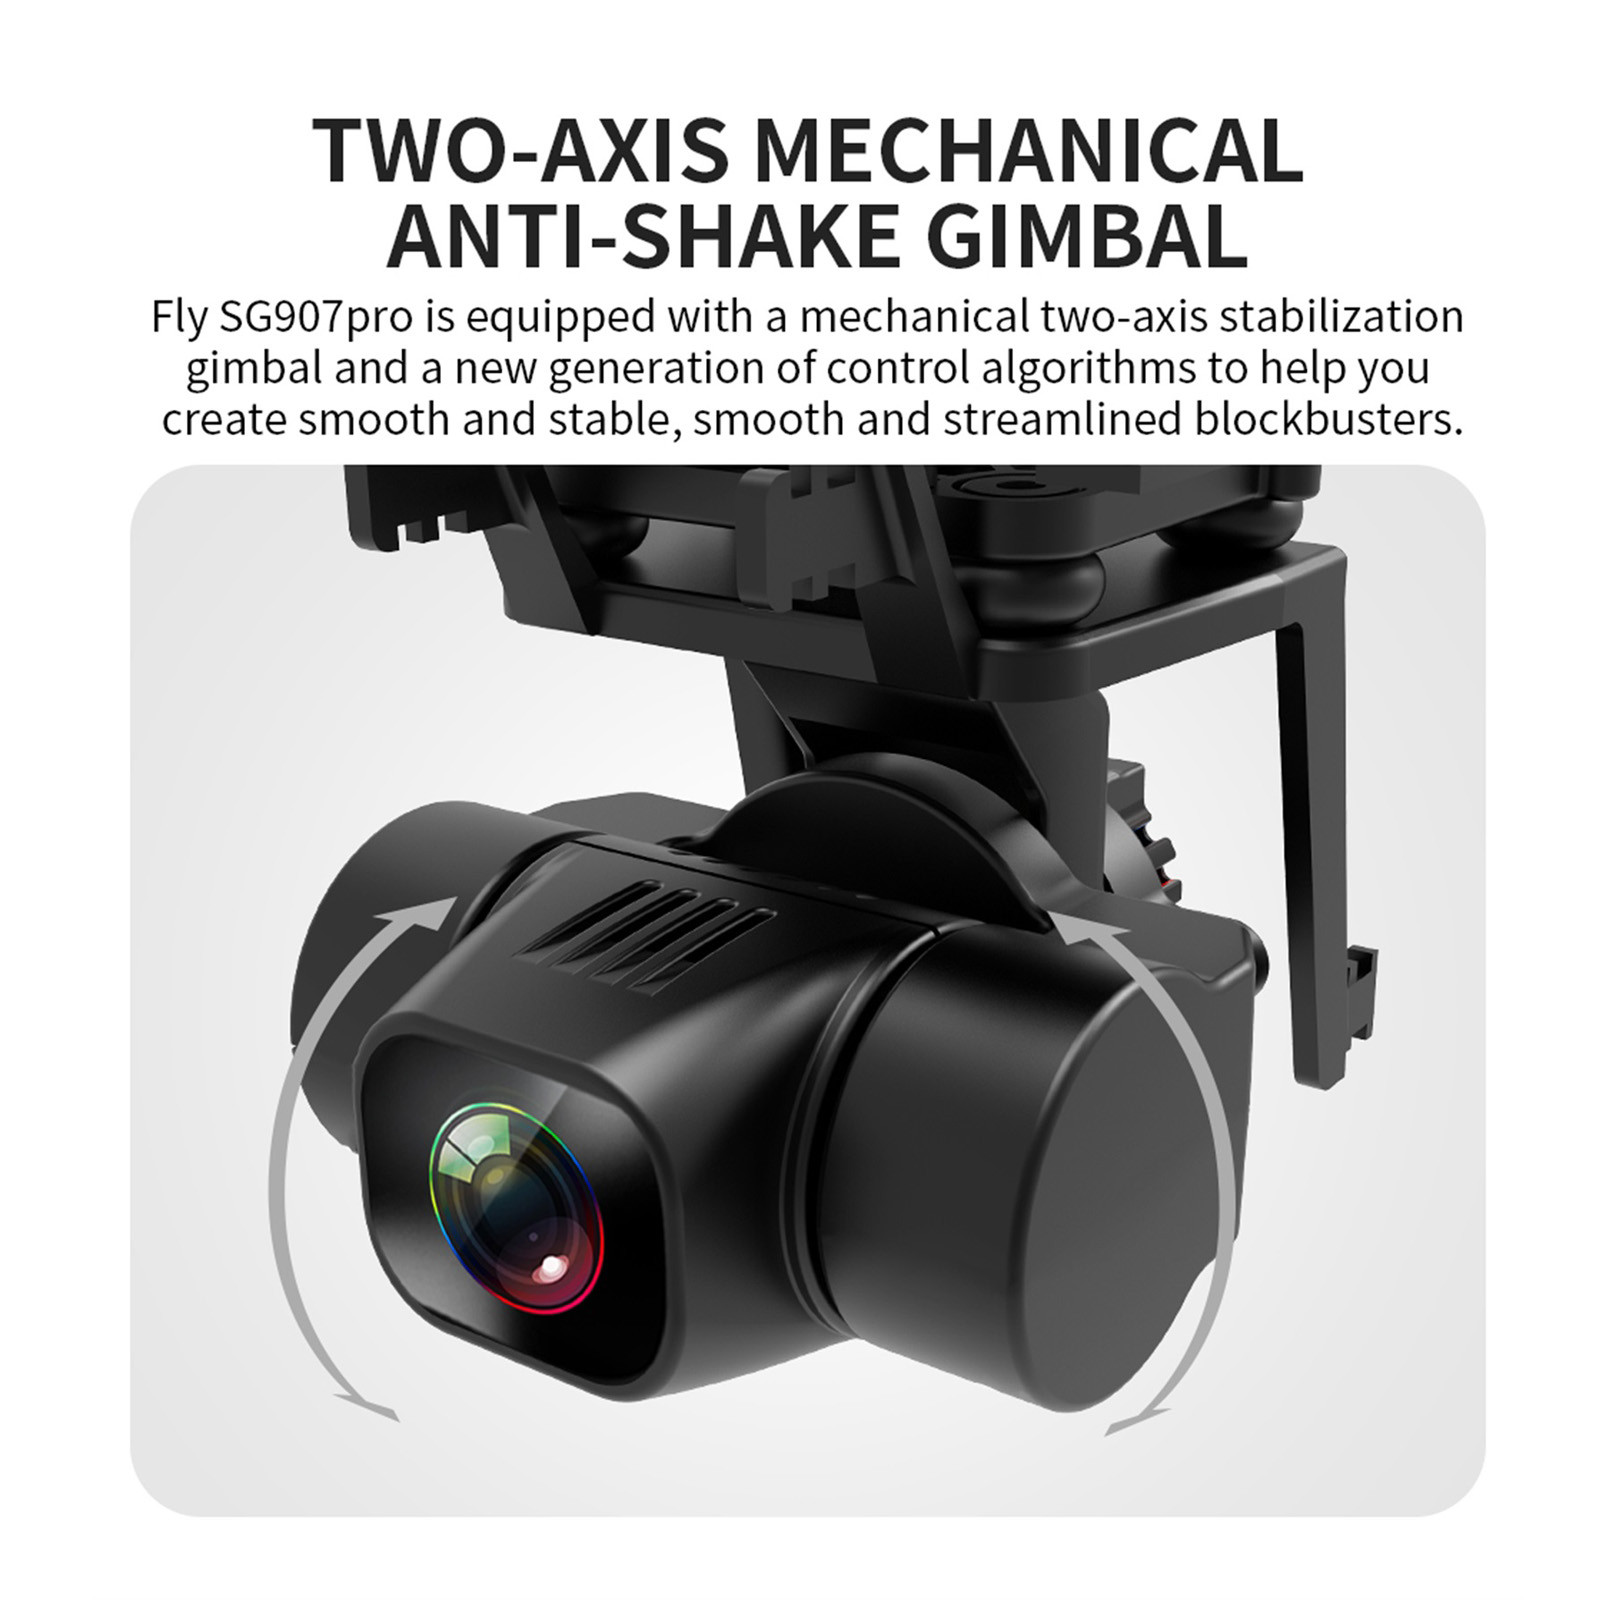 H5377a9245ed549cc9b1c1da2001bd46aS - 2020 New Sg907 Pro 5g Wifi Drone 2-axis Gimbal 4k Camera Wifi Gps Rc Drone Toy Rc Four-axis Professional Folding Camera Drones